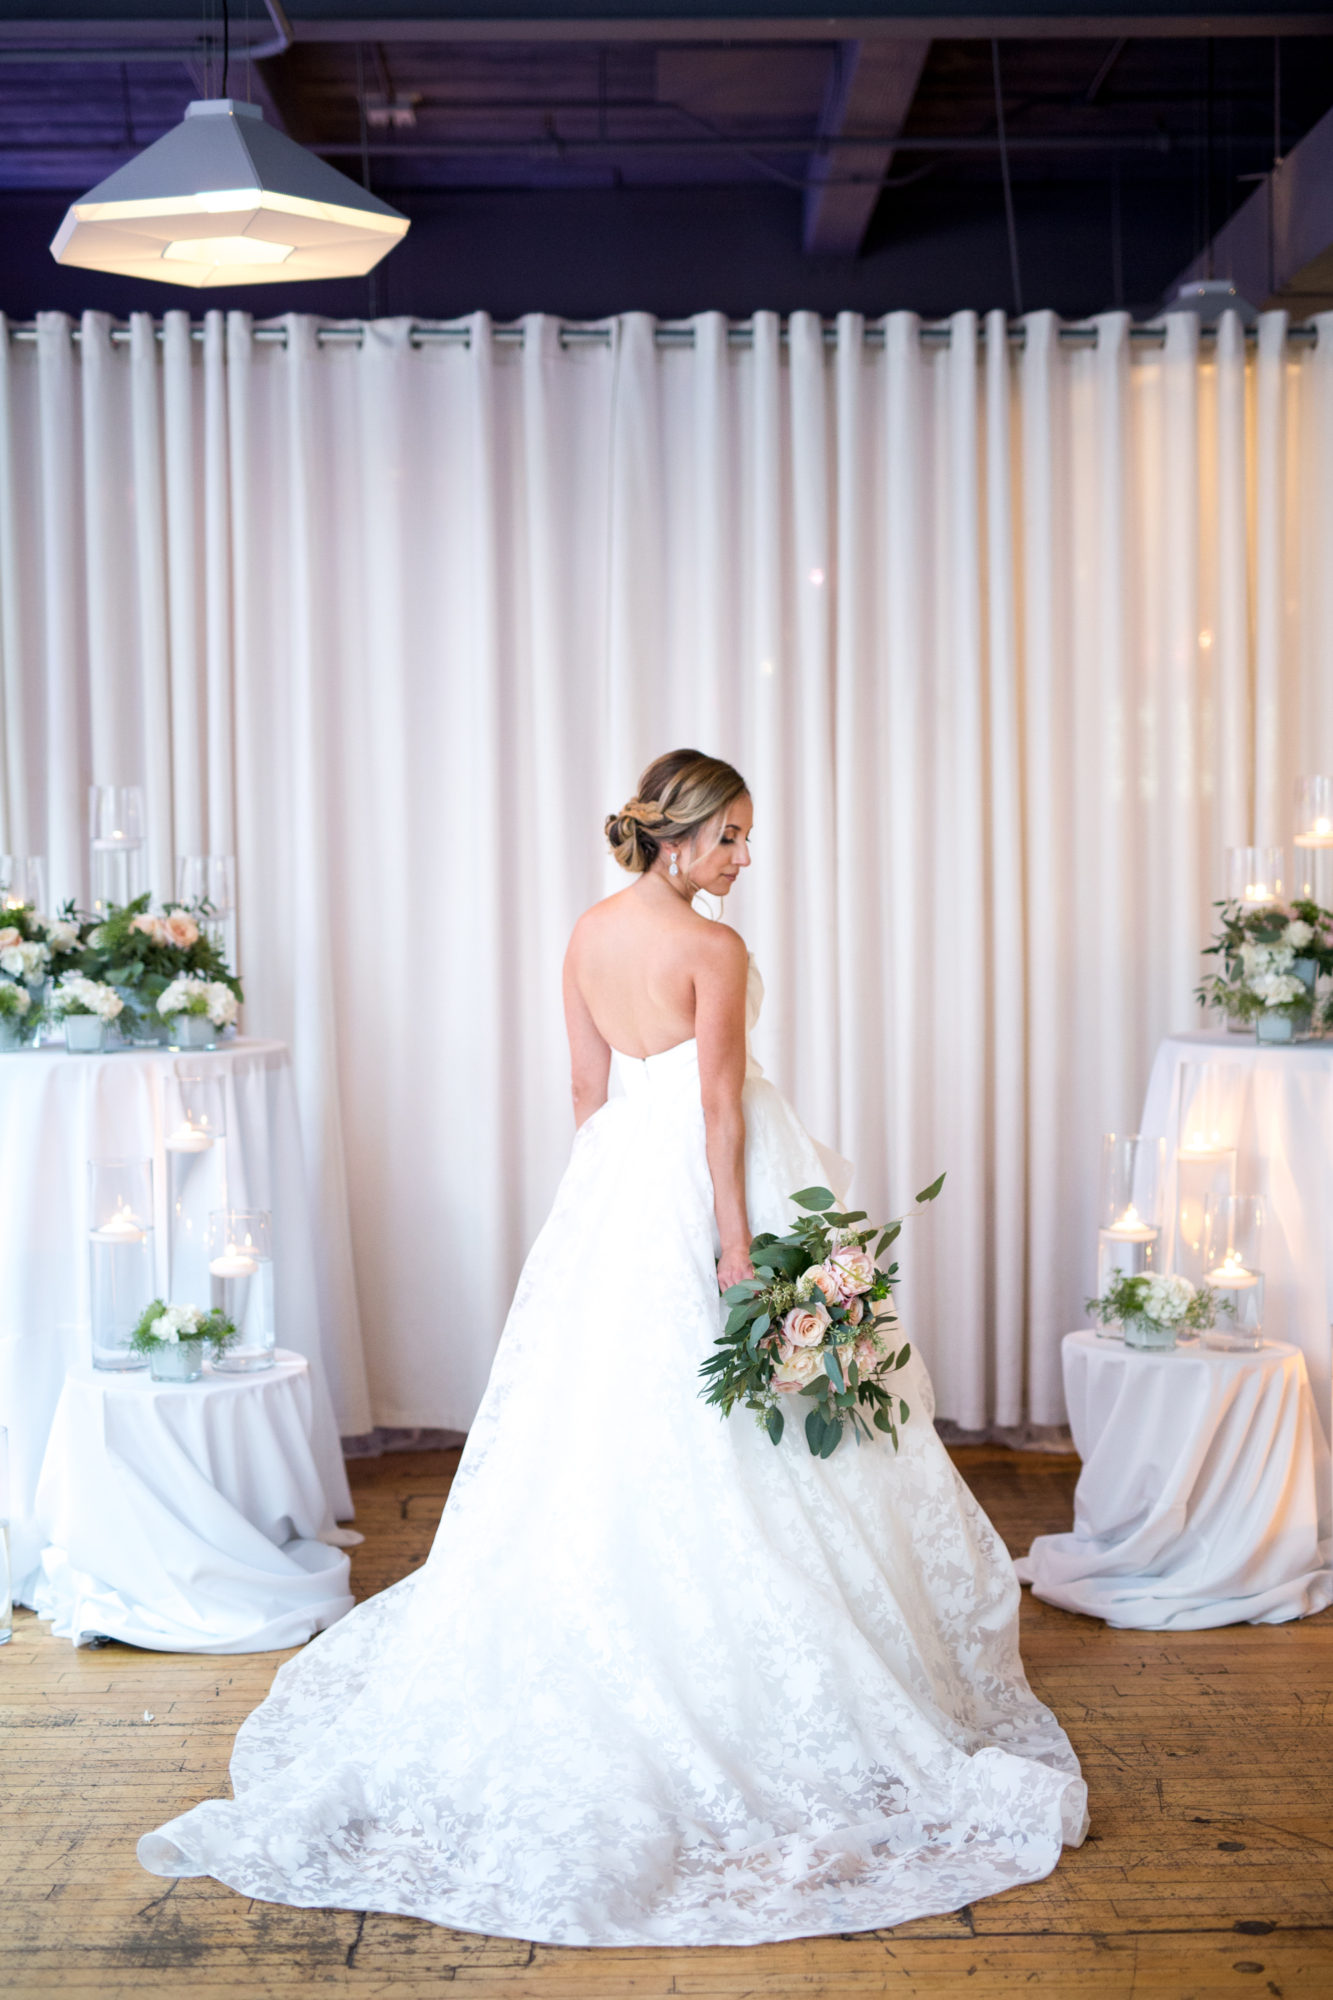 Bride Bouquet Hayley Paige Dress Gown Zsuzsi Pal Photography Toronto Wedding 2nd Second Floor Events